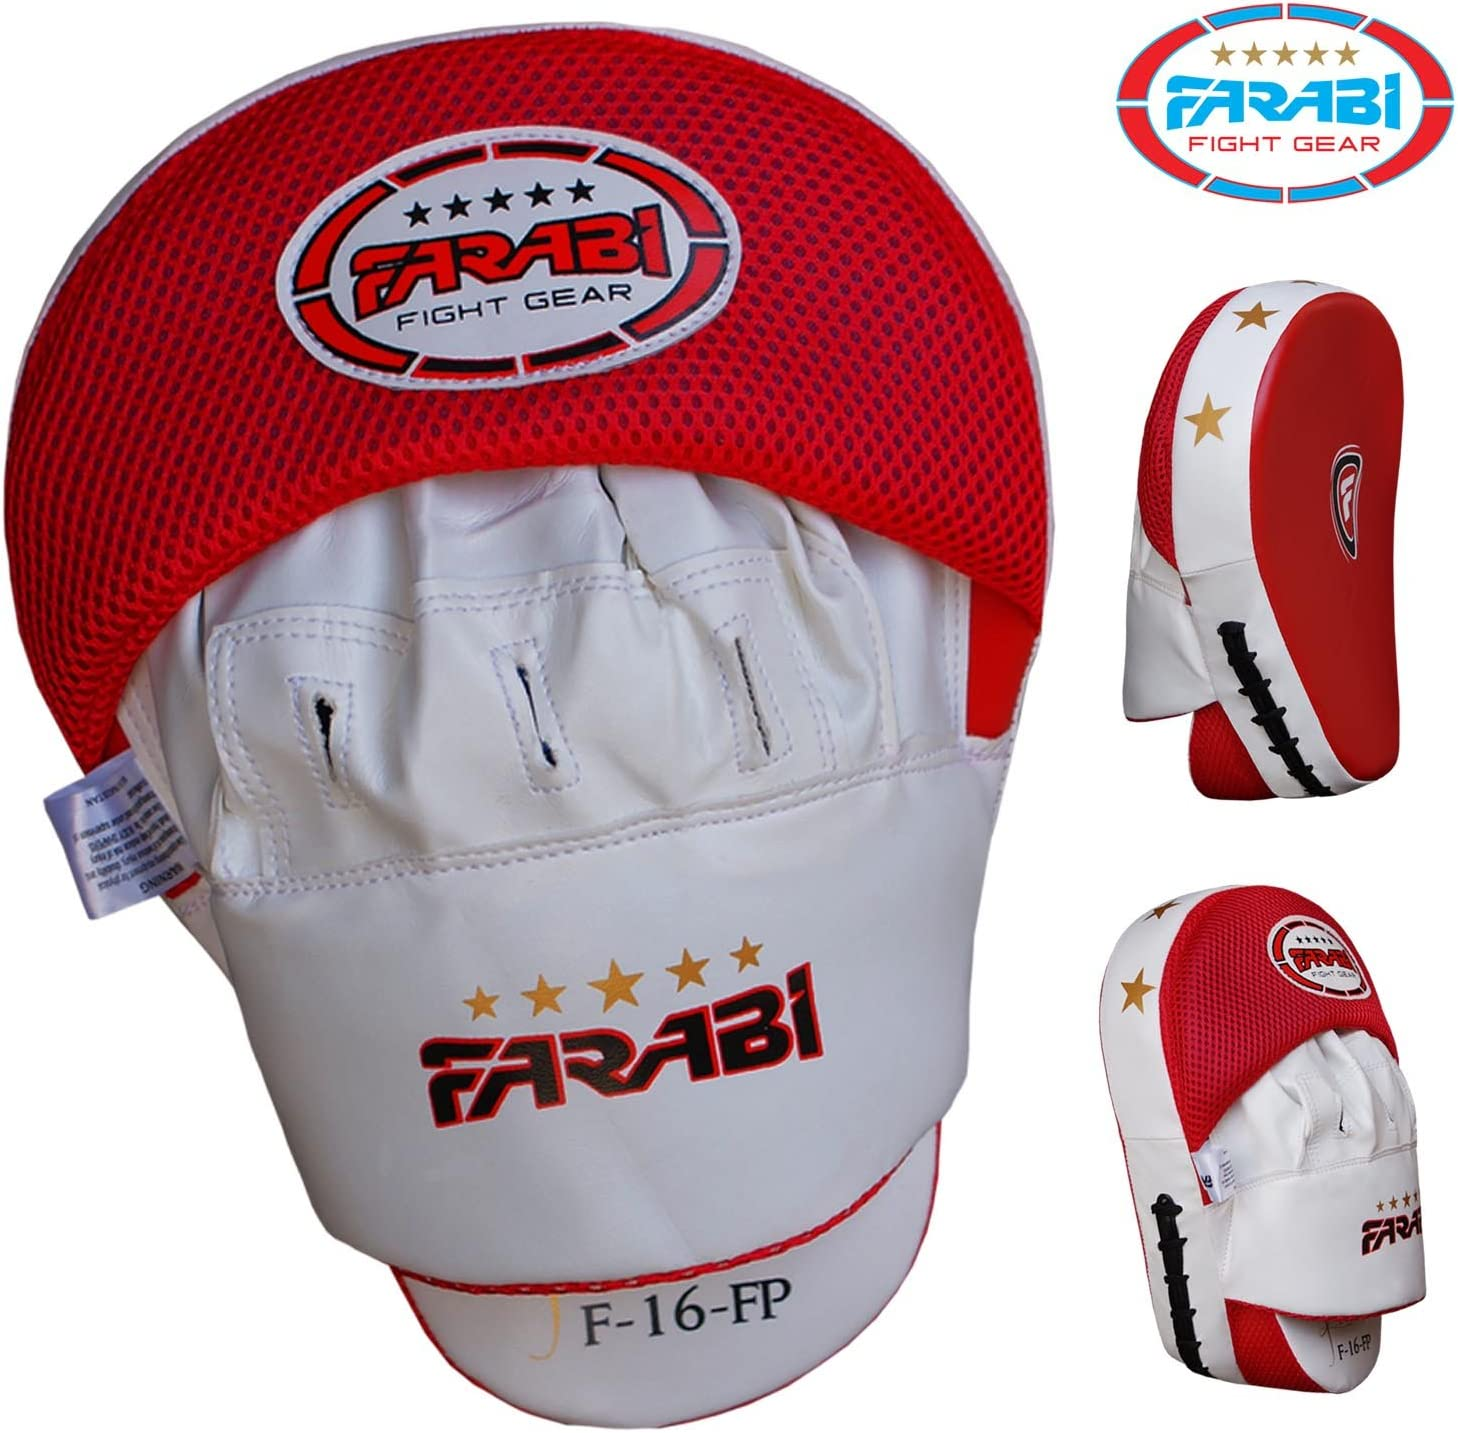 Farabi Curved Focus Pads Hook /& Jab Mitts Boxing Training Pads